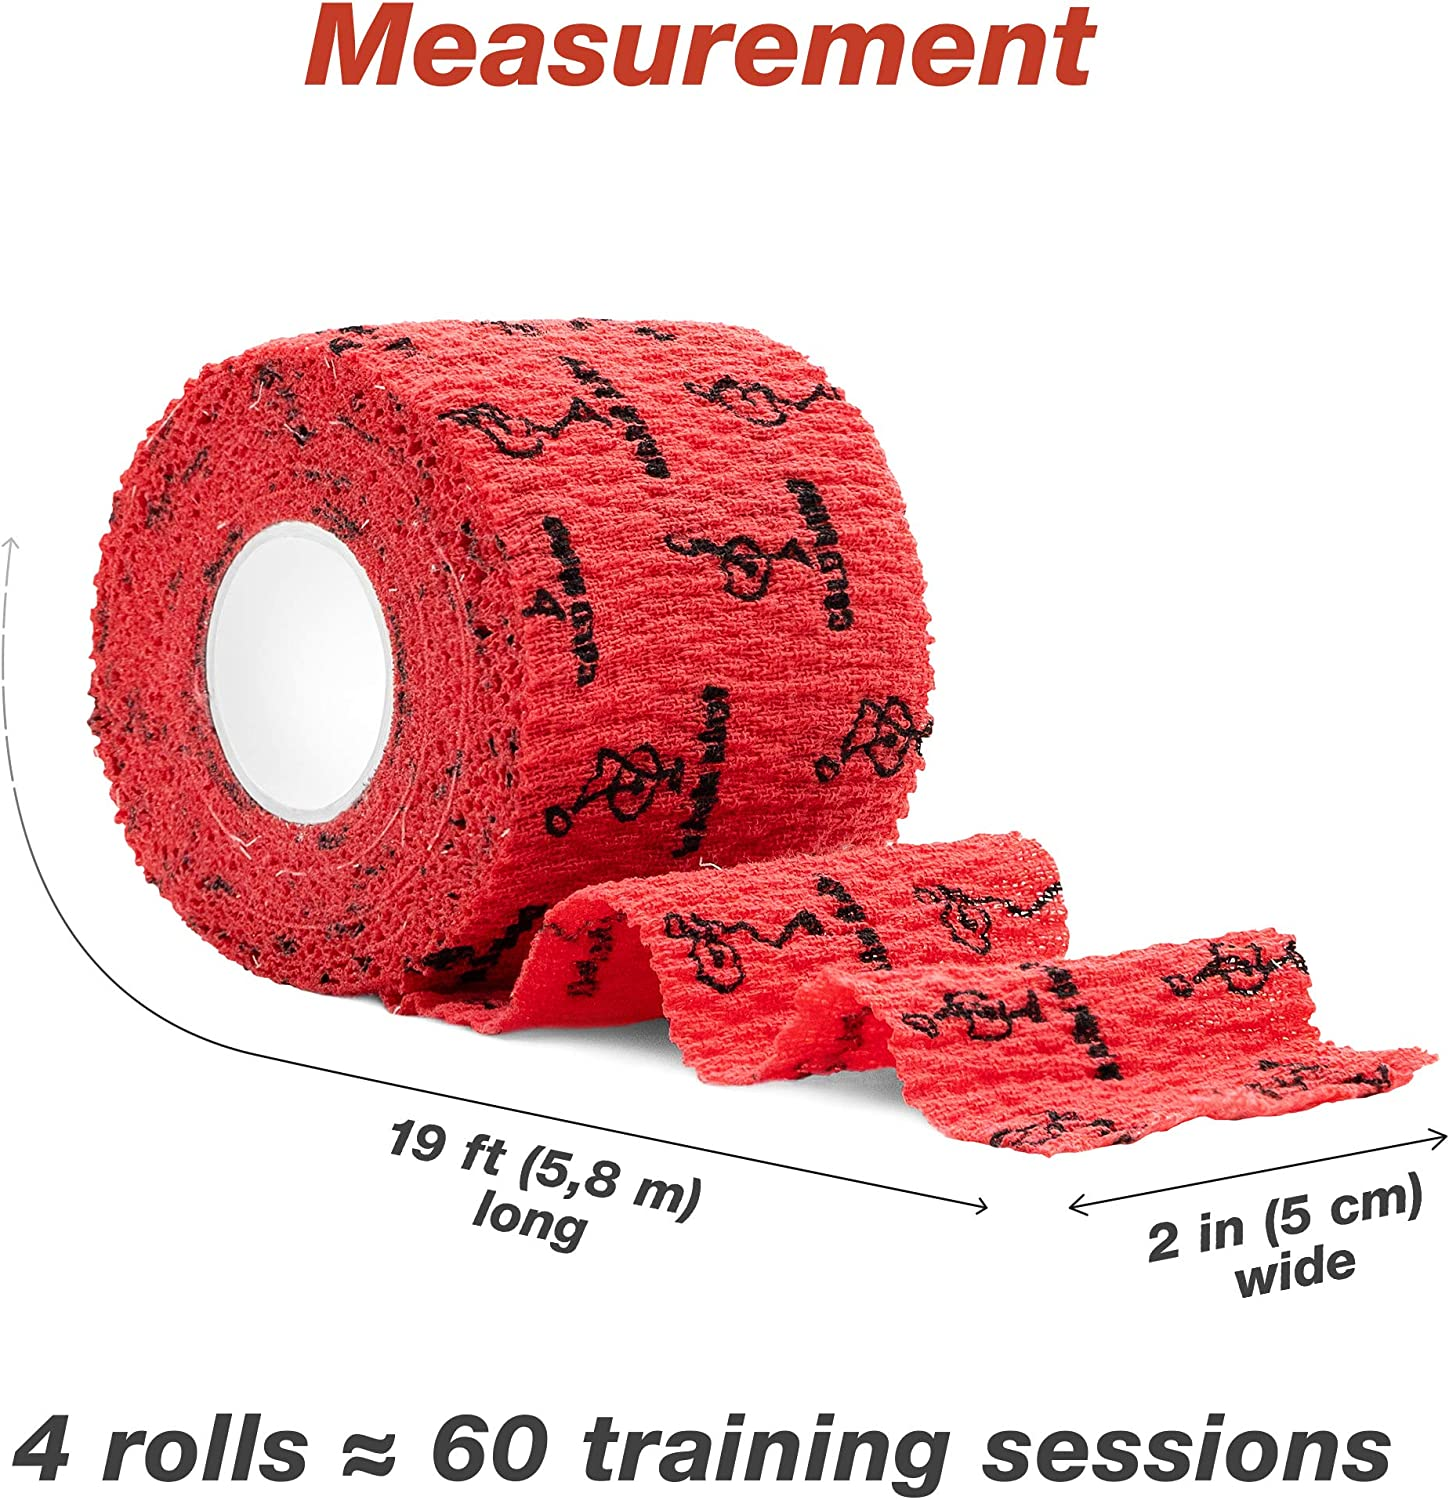 WARM BODY COLD MIND Premium Lifting Thumb Tape for Weightlifting Powerlifting /& Strength Deadlift Training Hook Grip Tearable Elastic Cotton Sweat Proof and Breathable